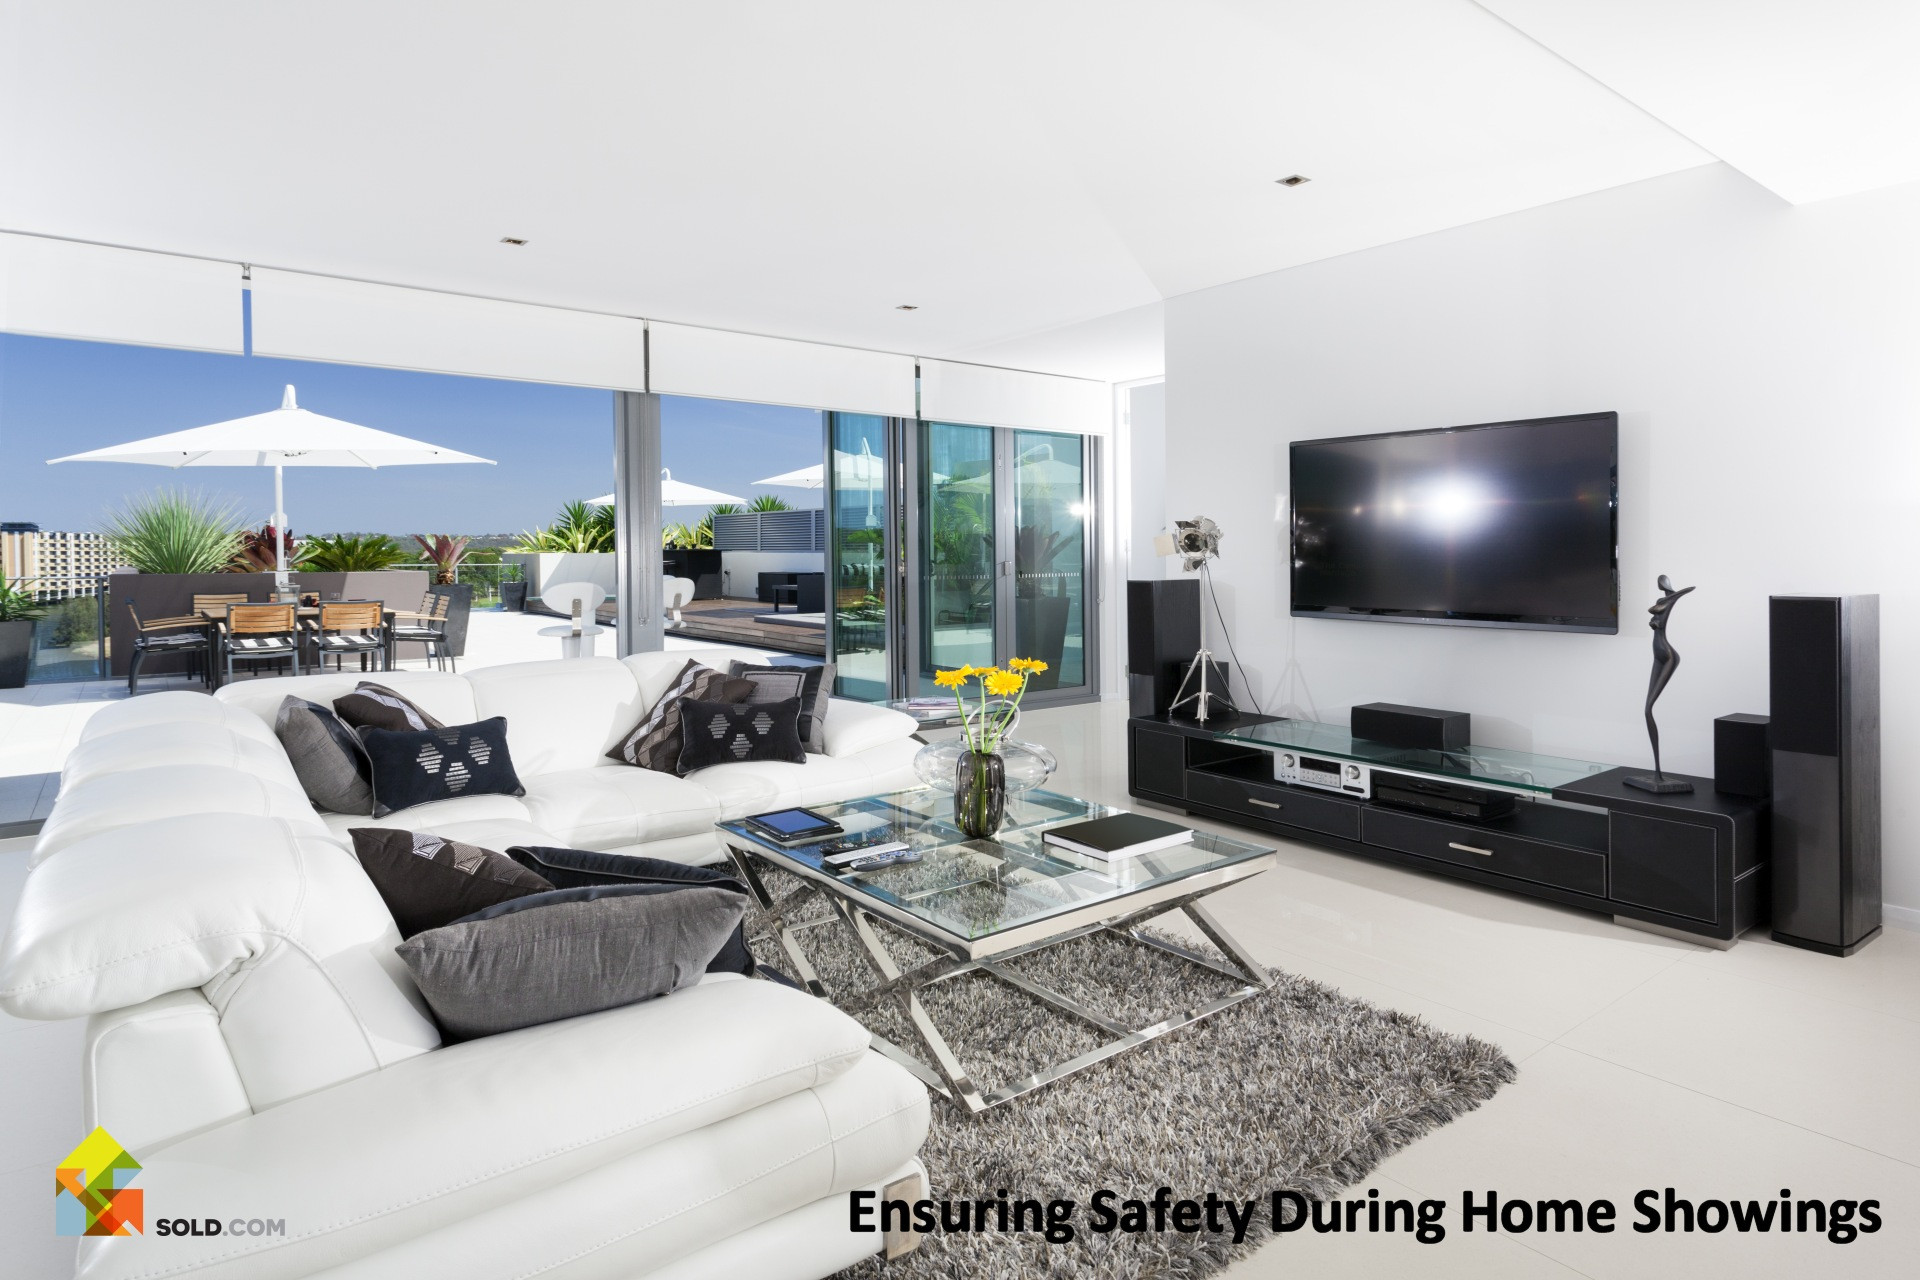 Ensuring Safety During Home Showings